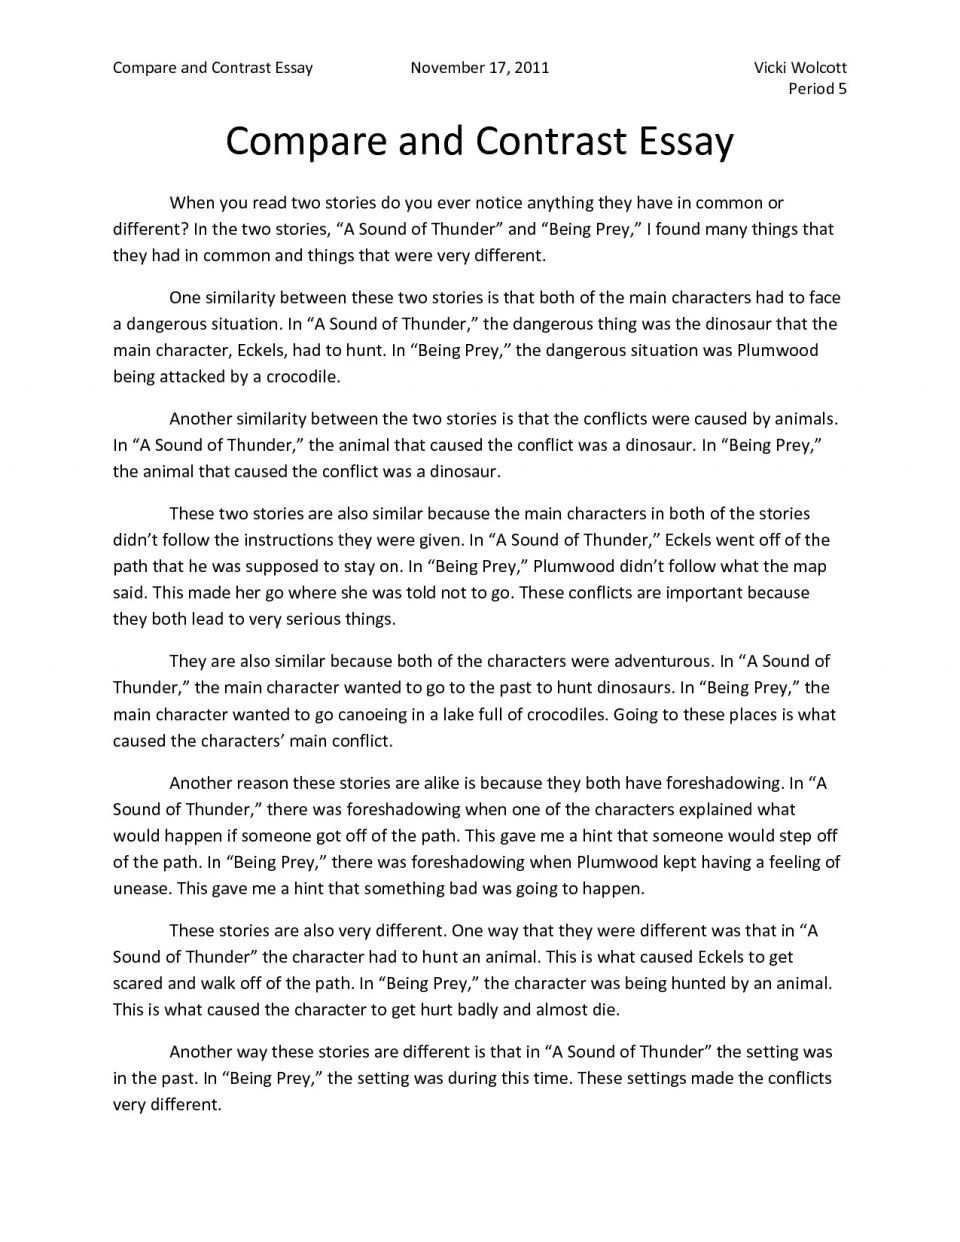 006 Comparing And Contrasting Essay Example Satire Examples Of Comparison Contrast Essays Com How To Write Outstanding A Compare Outline Powerpoint Introduction 960